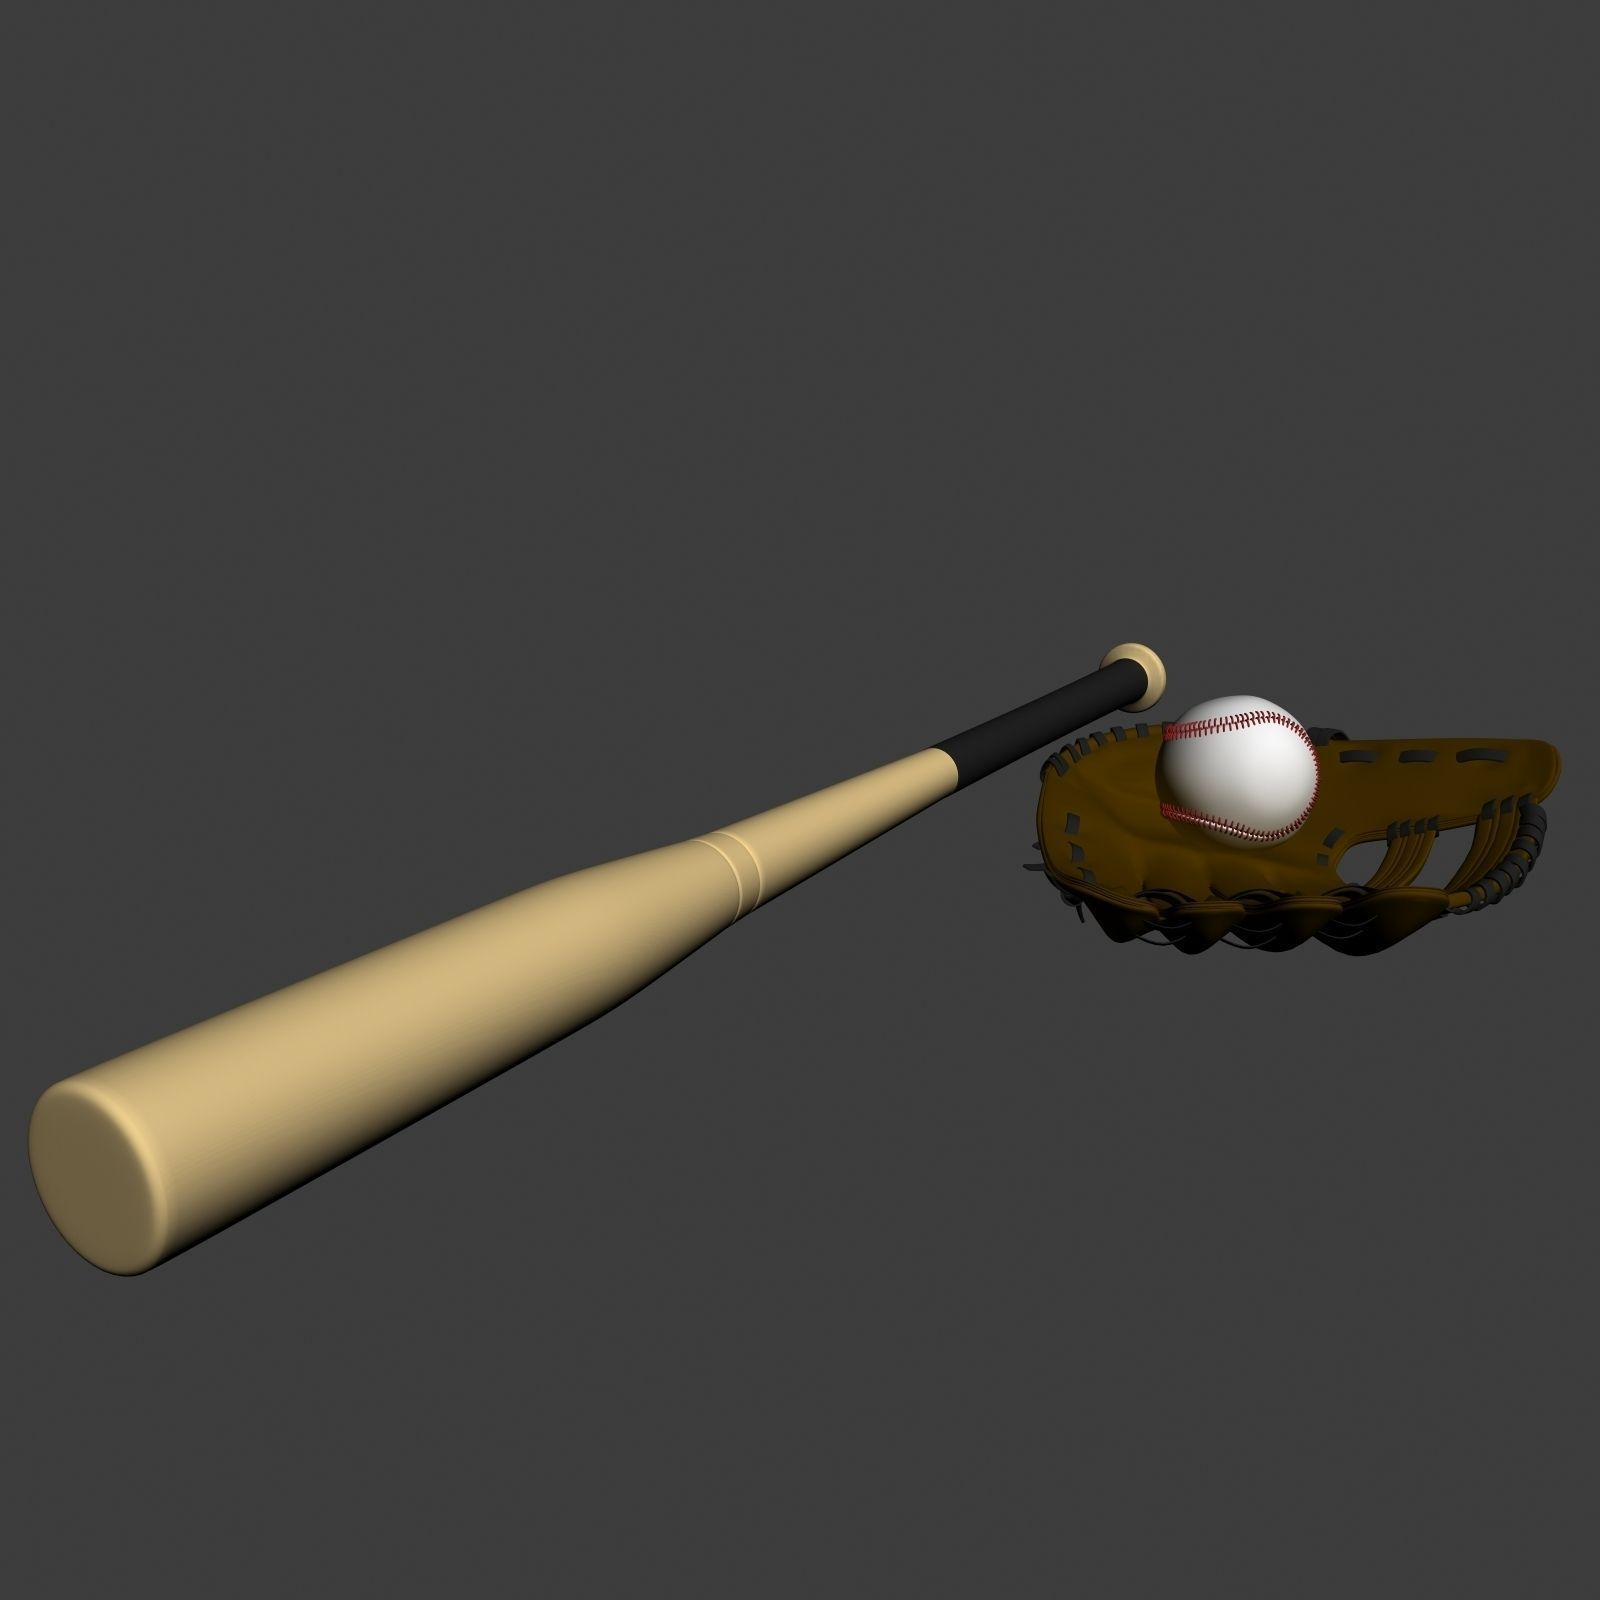 Base ball bat in pussy 8